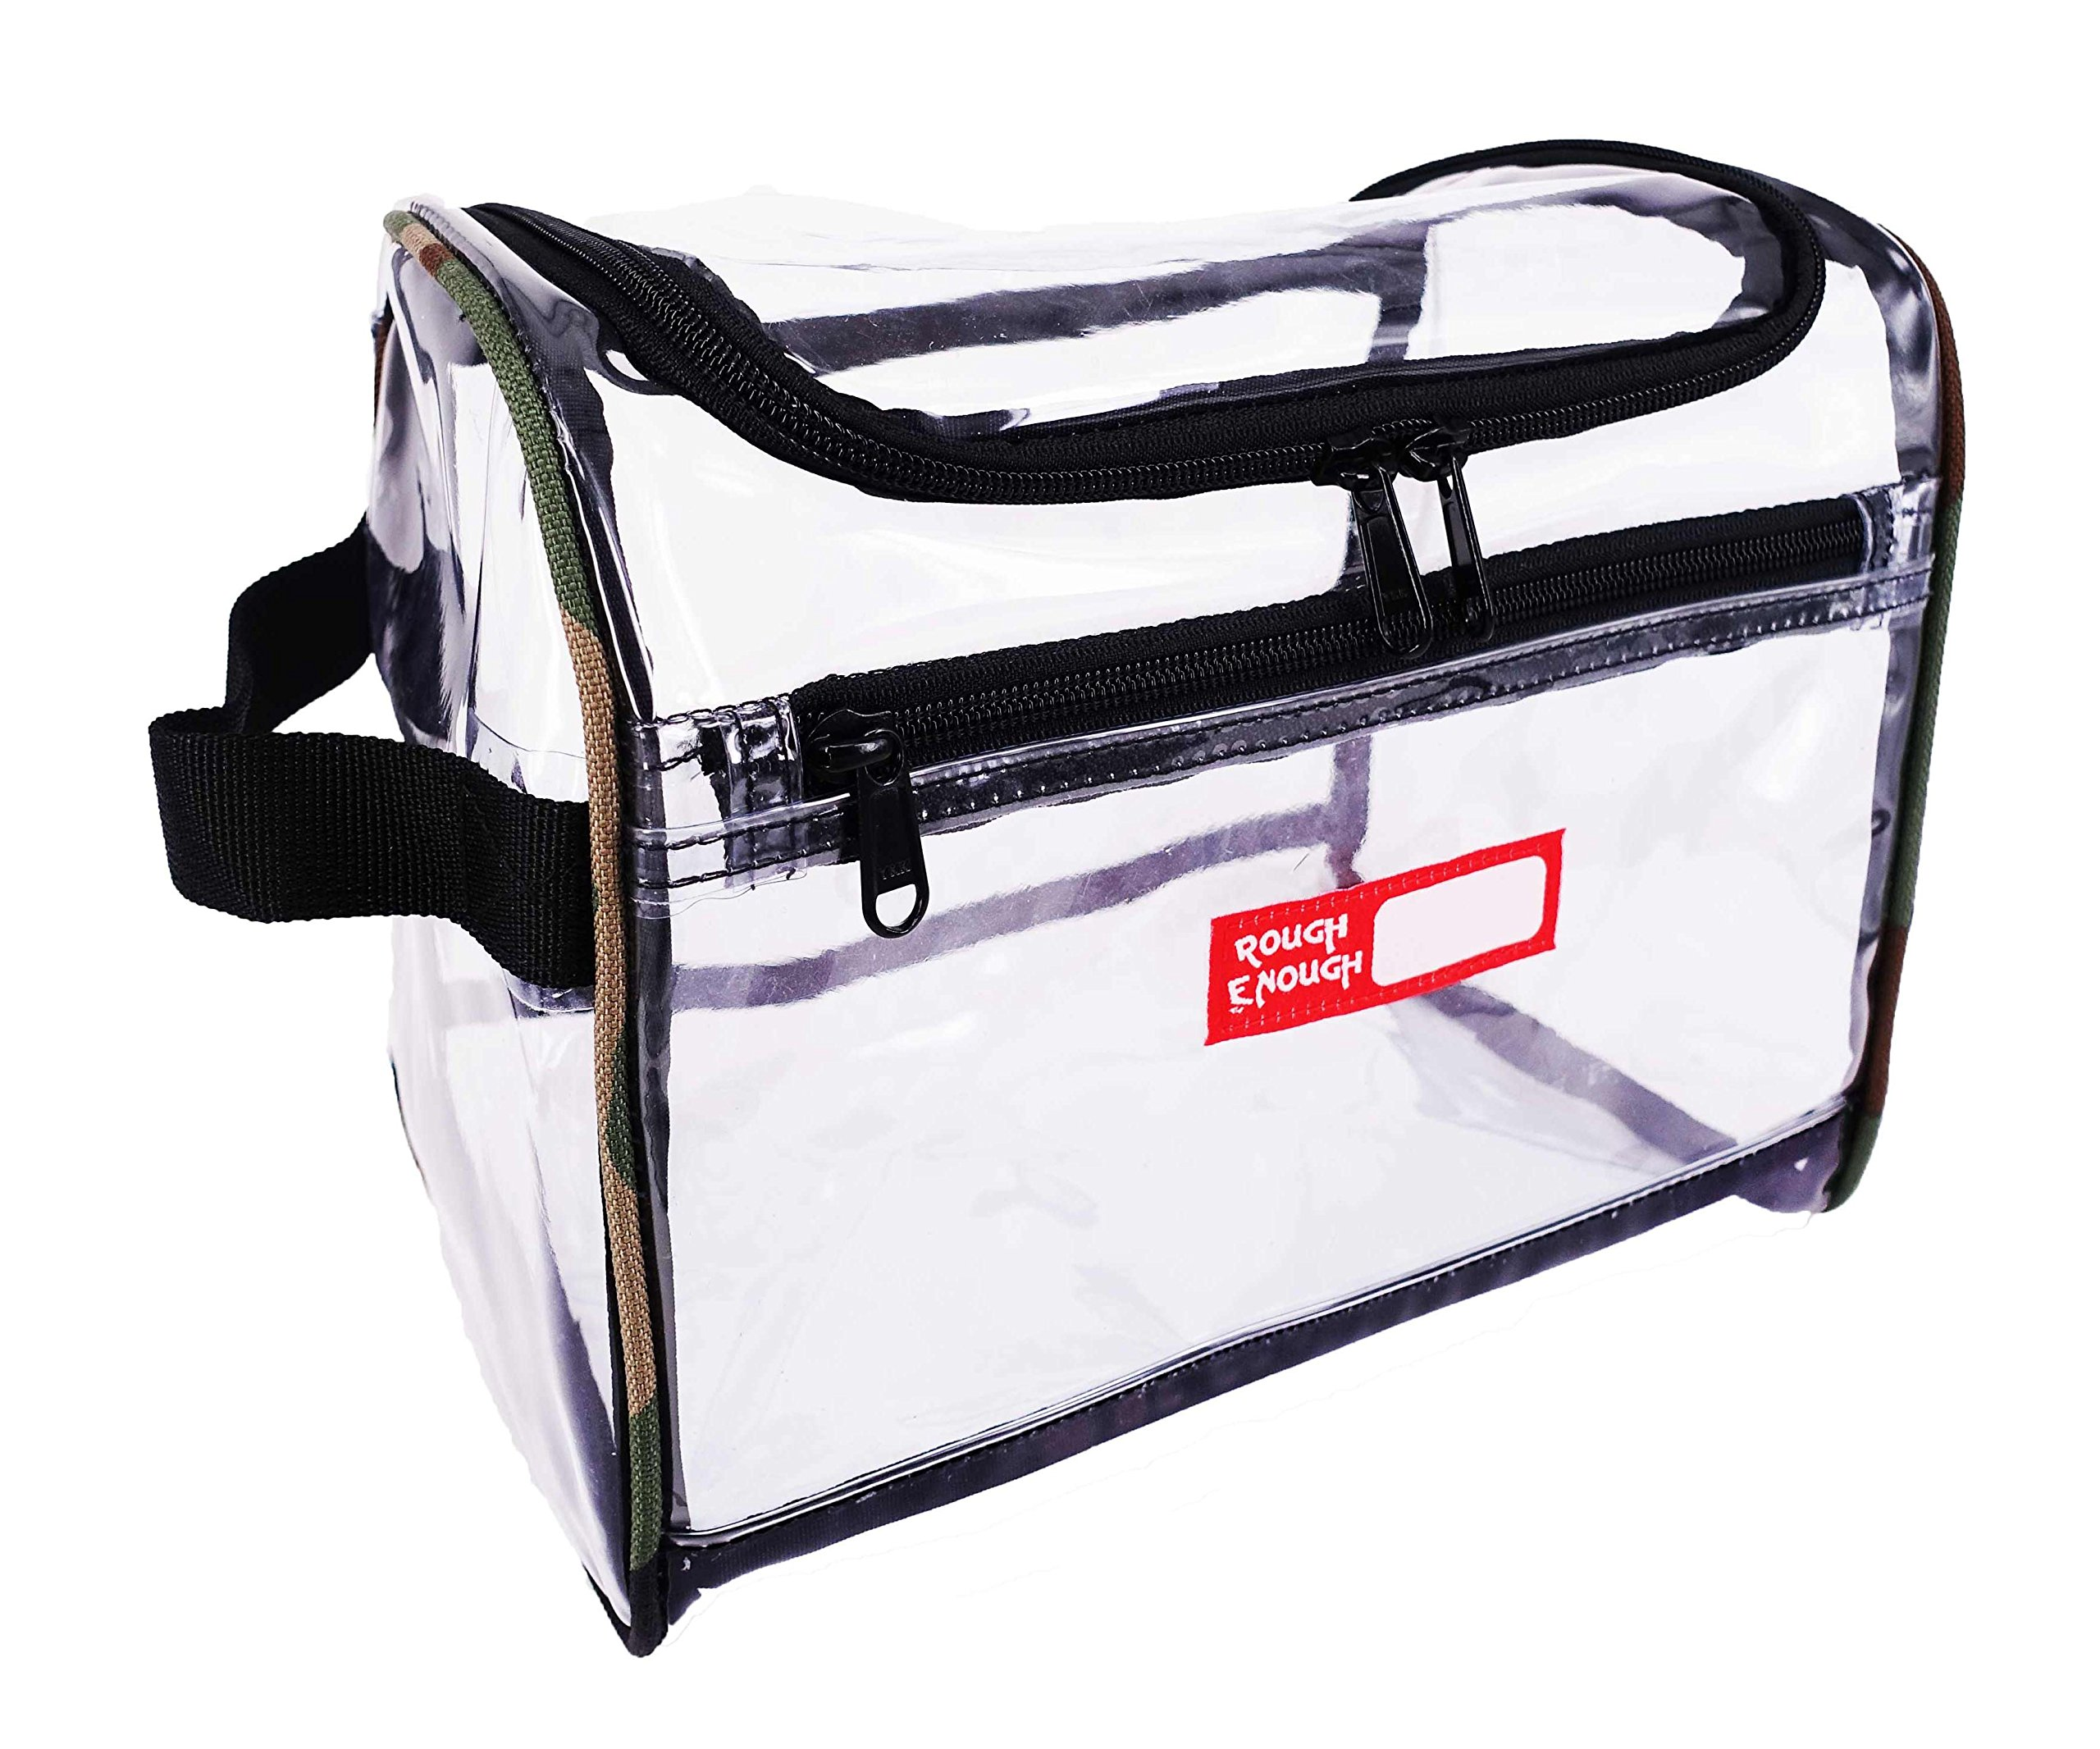 Rough Enough Transparent Large Capacity Toiletry Bag Big Volume Zippered Luggage Clear Travel Wash Bag Cosmetic Makeup Organizer Kit Box Set with Zipper for Trip Accessories Shampoo Personal Portable